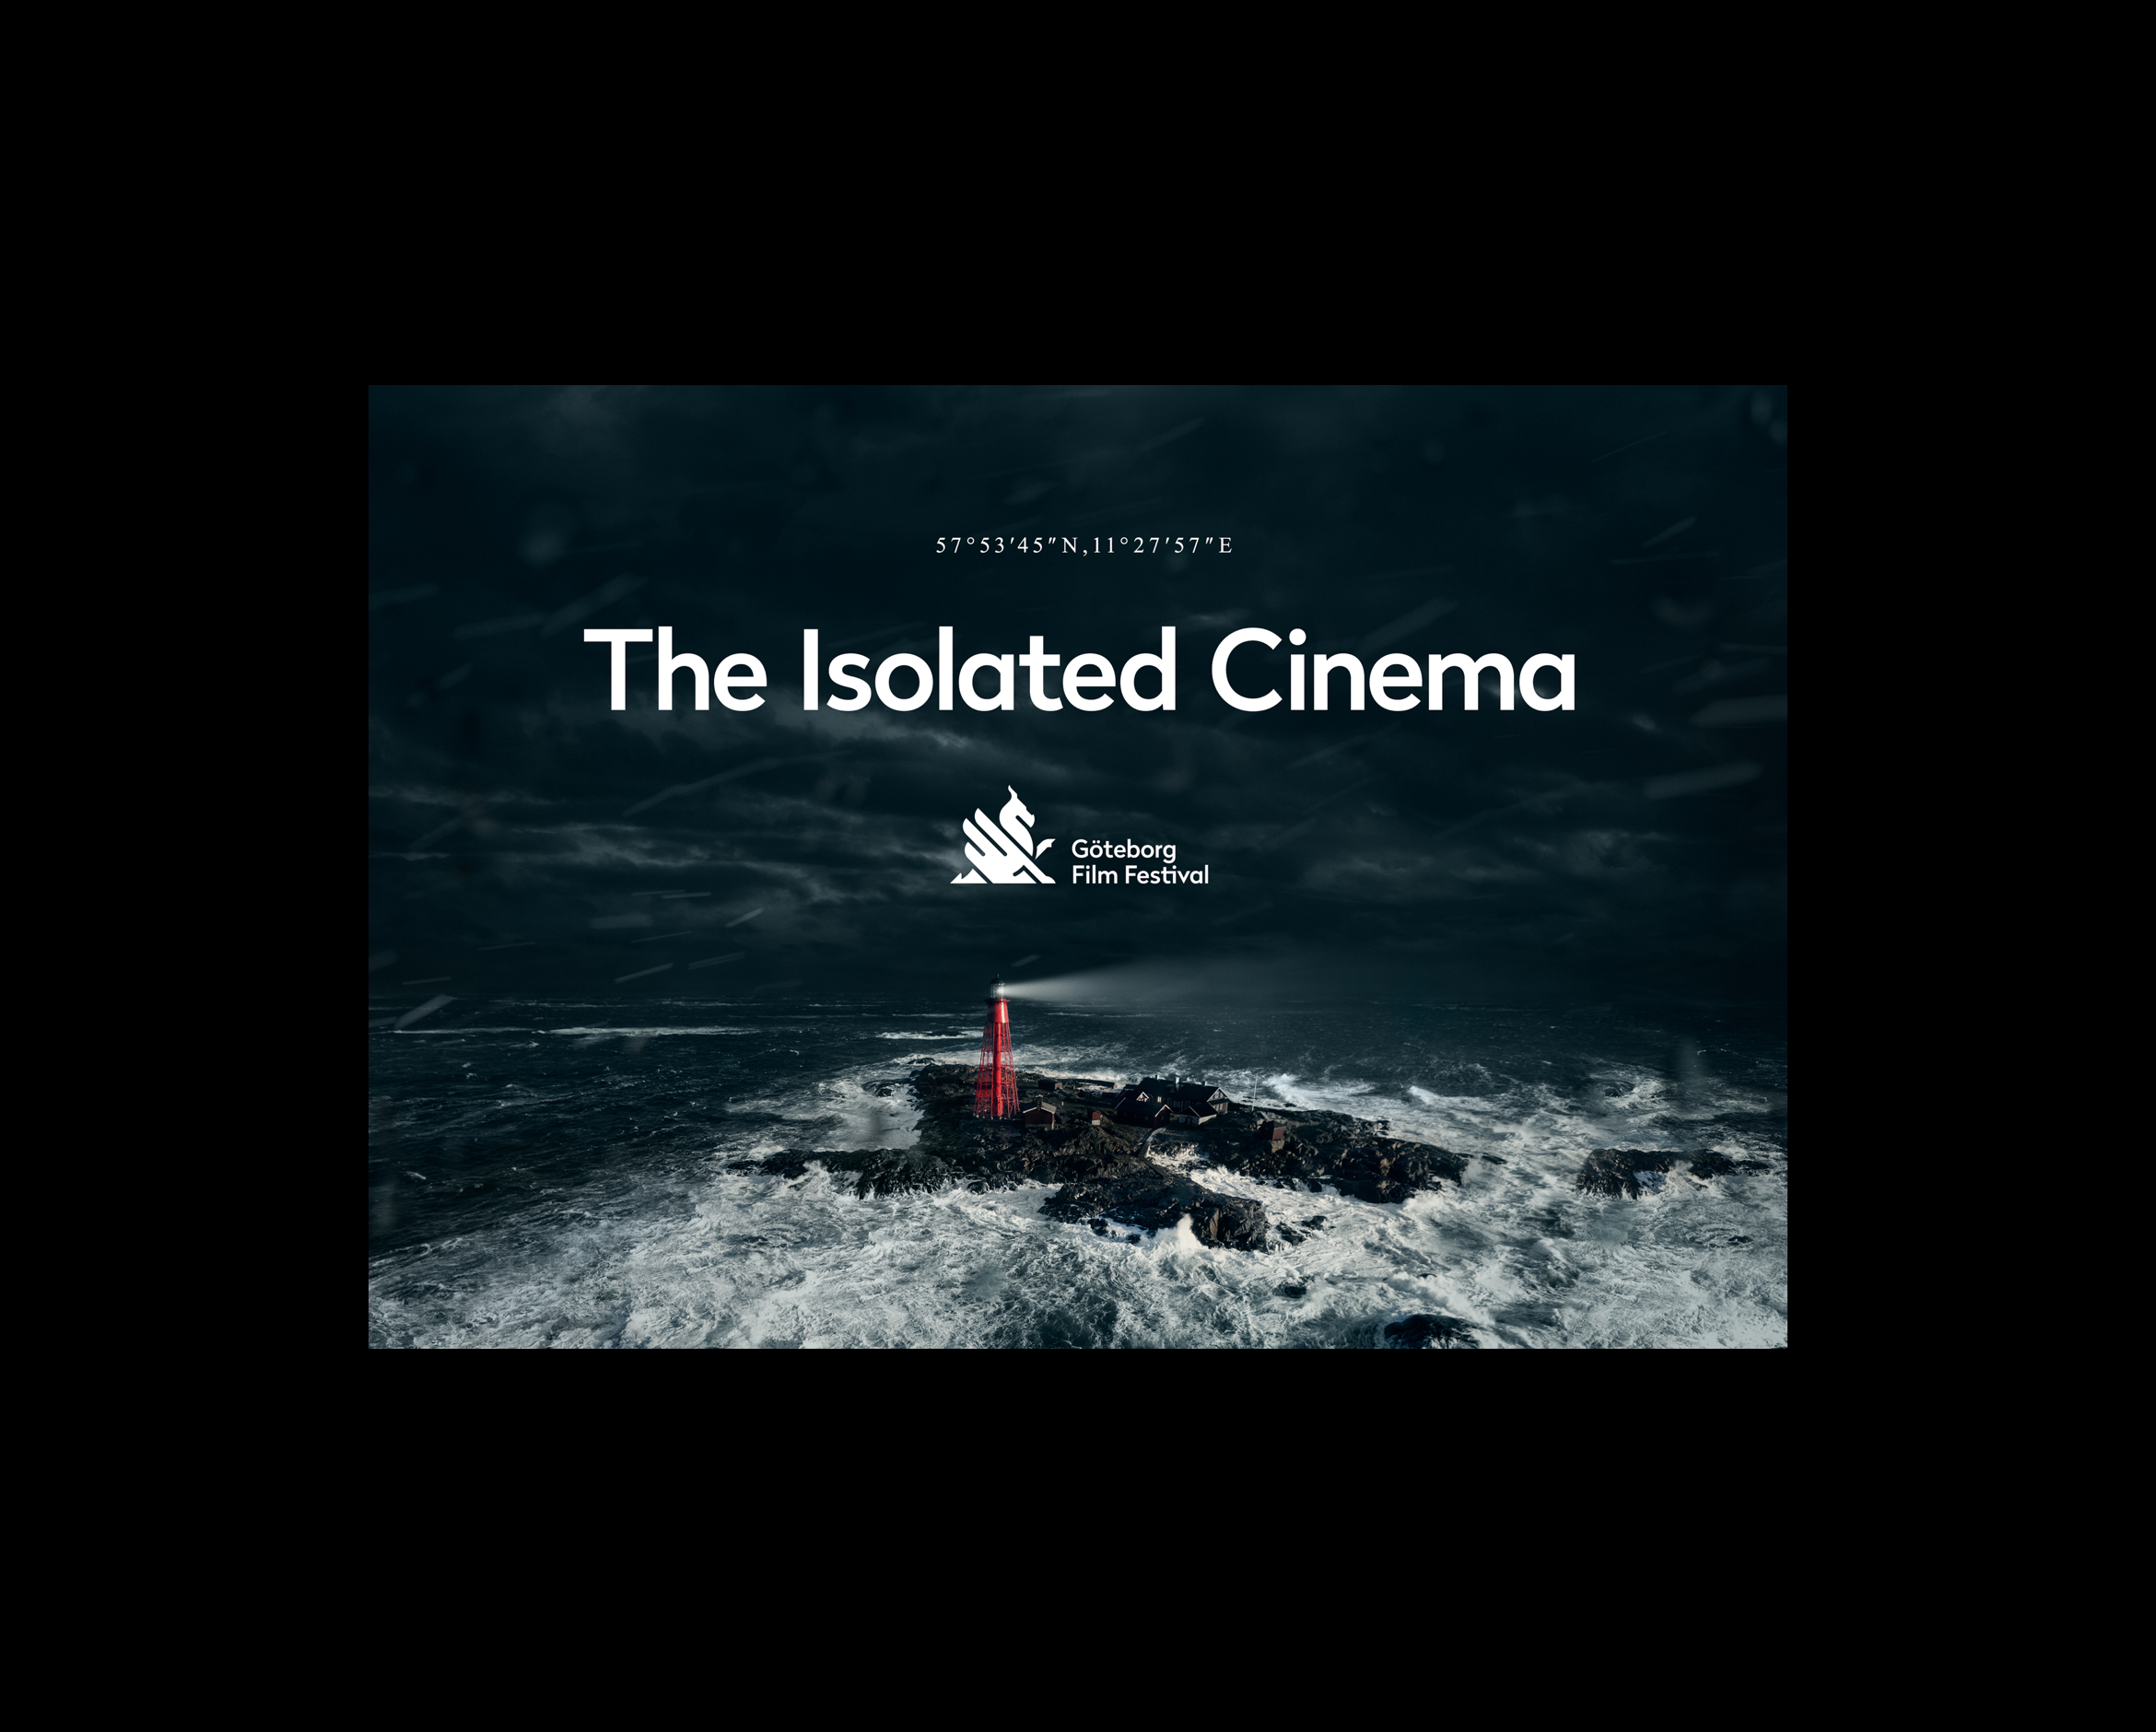 GFF_IsolatedCinema_01